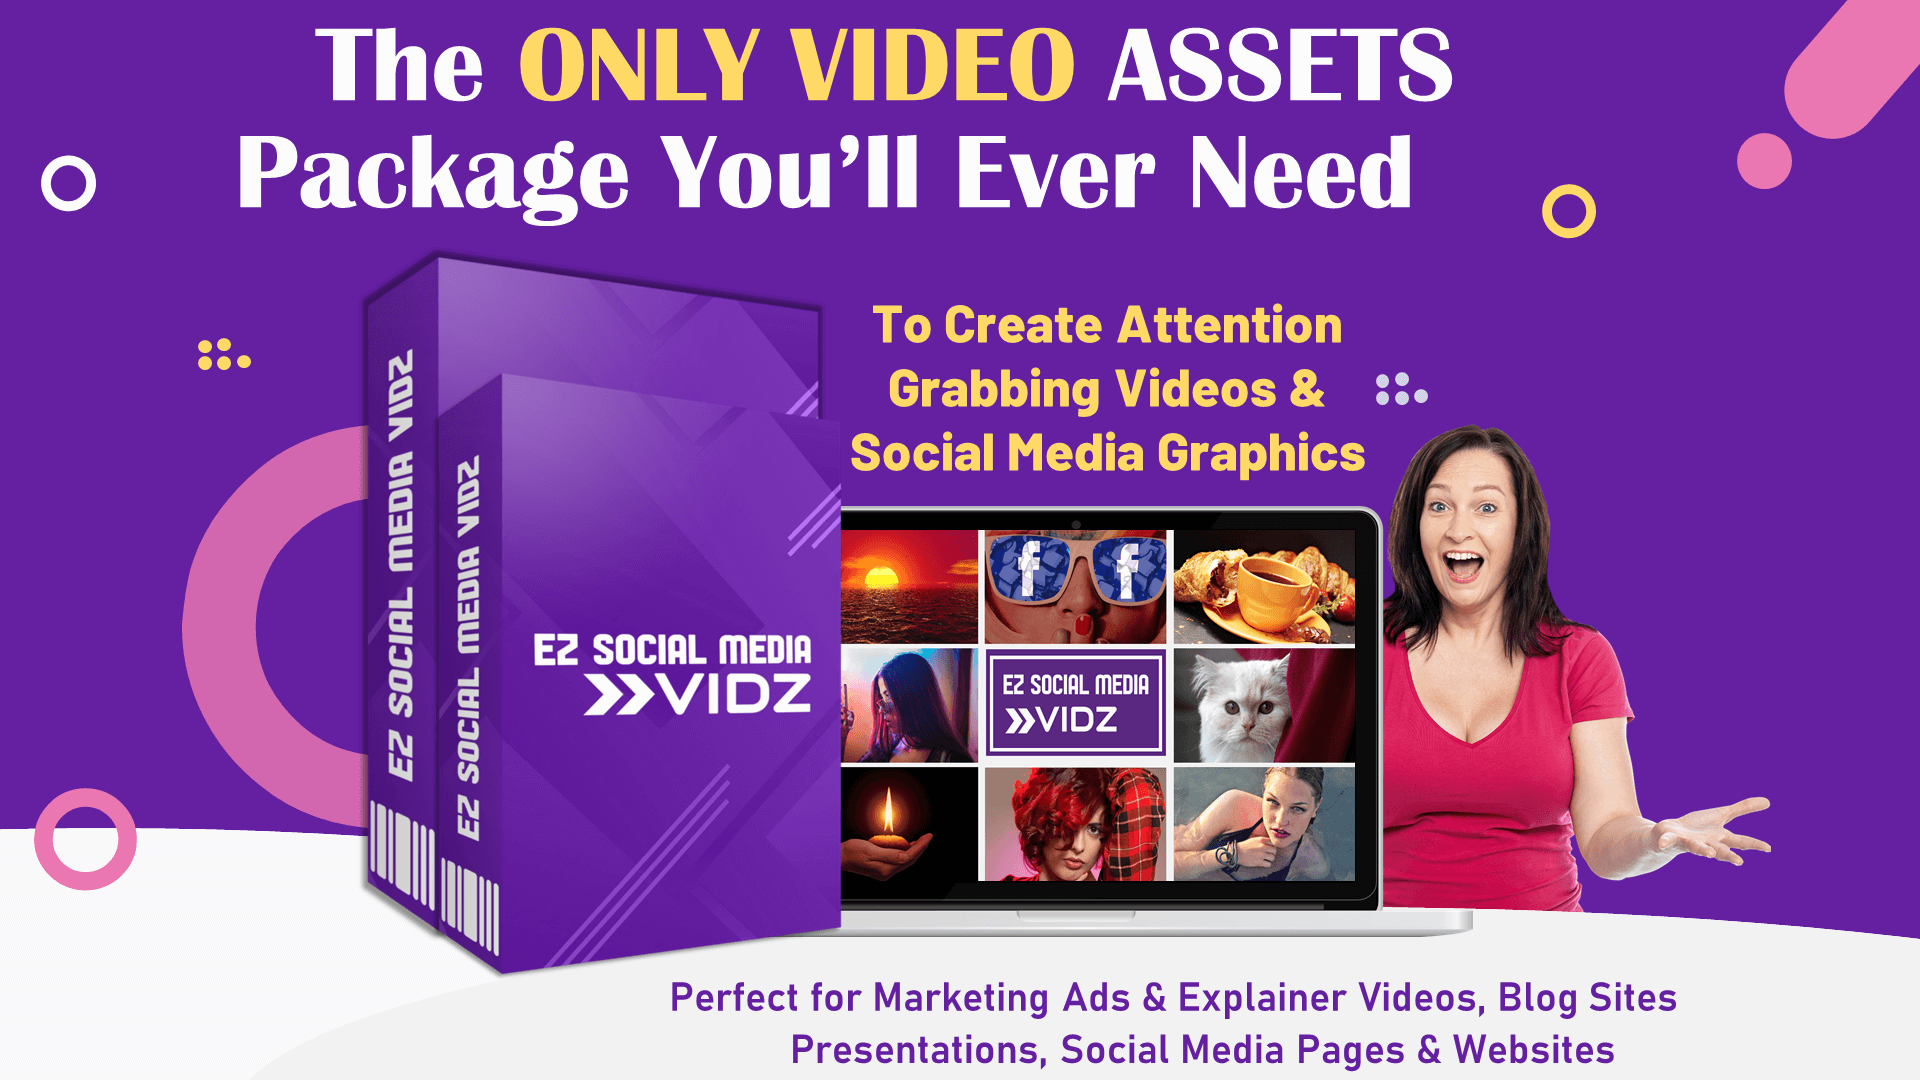 video-assets-package-uses